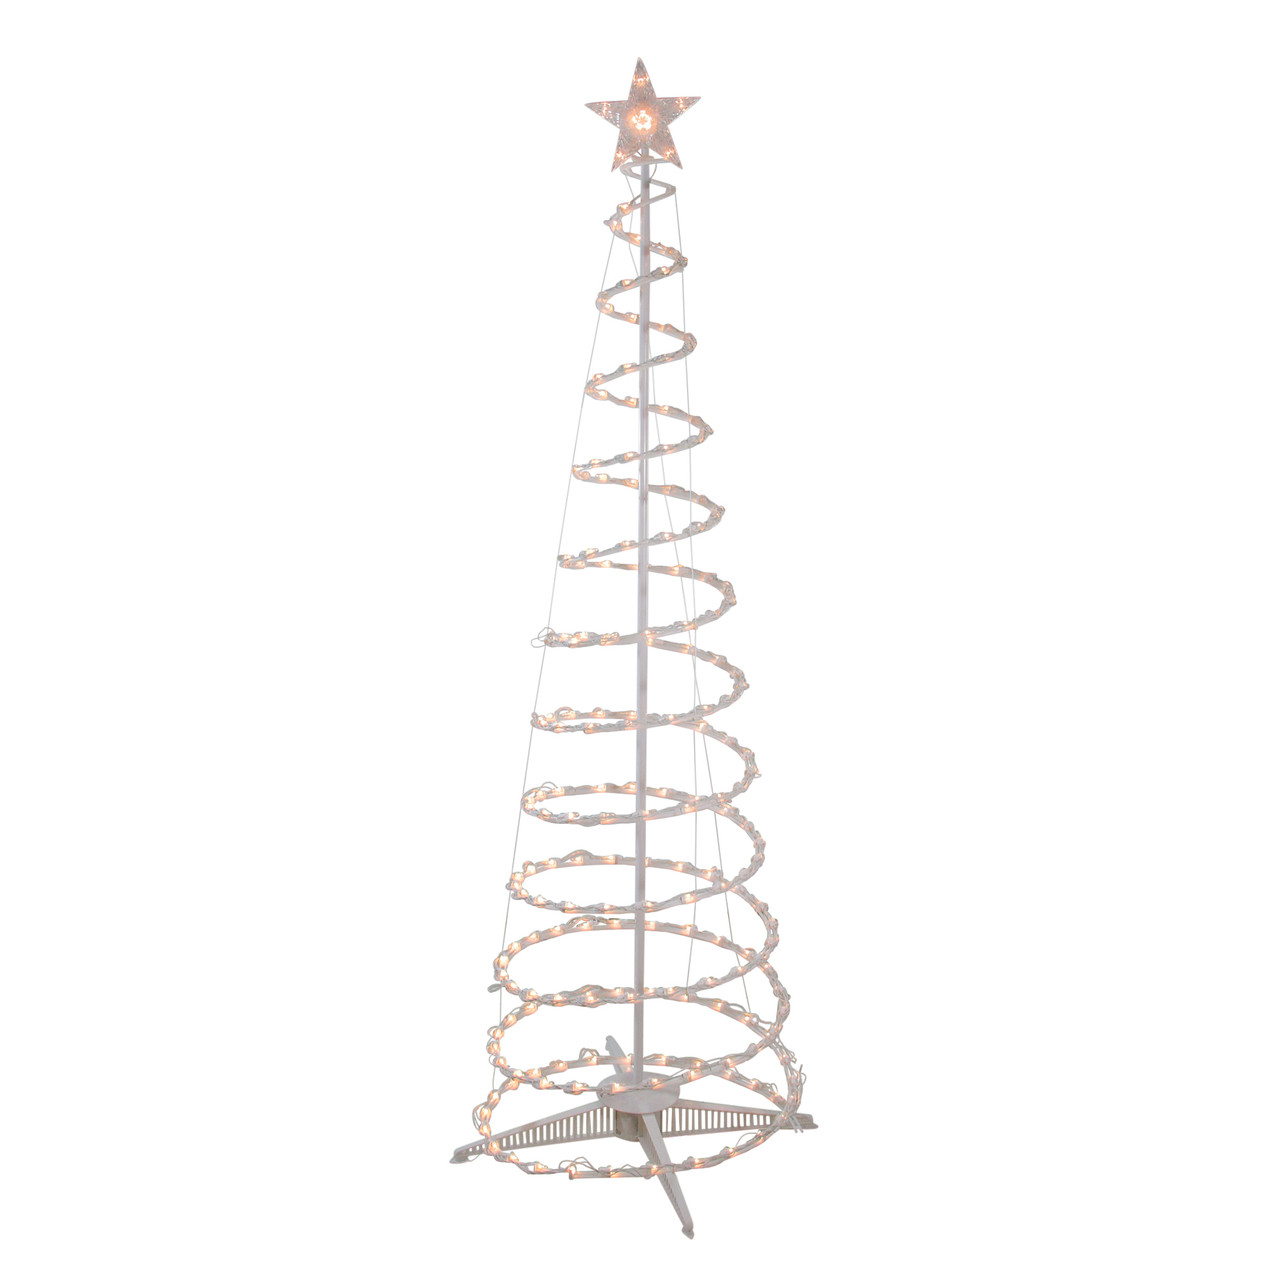 6' Clear Lighted Spiral Cone Tree Outdoor Christmas Decoration - 32912693